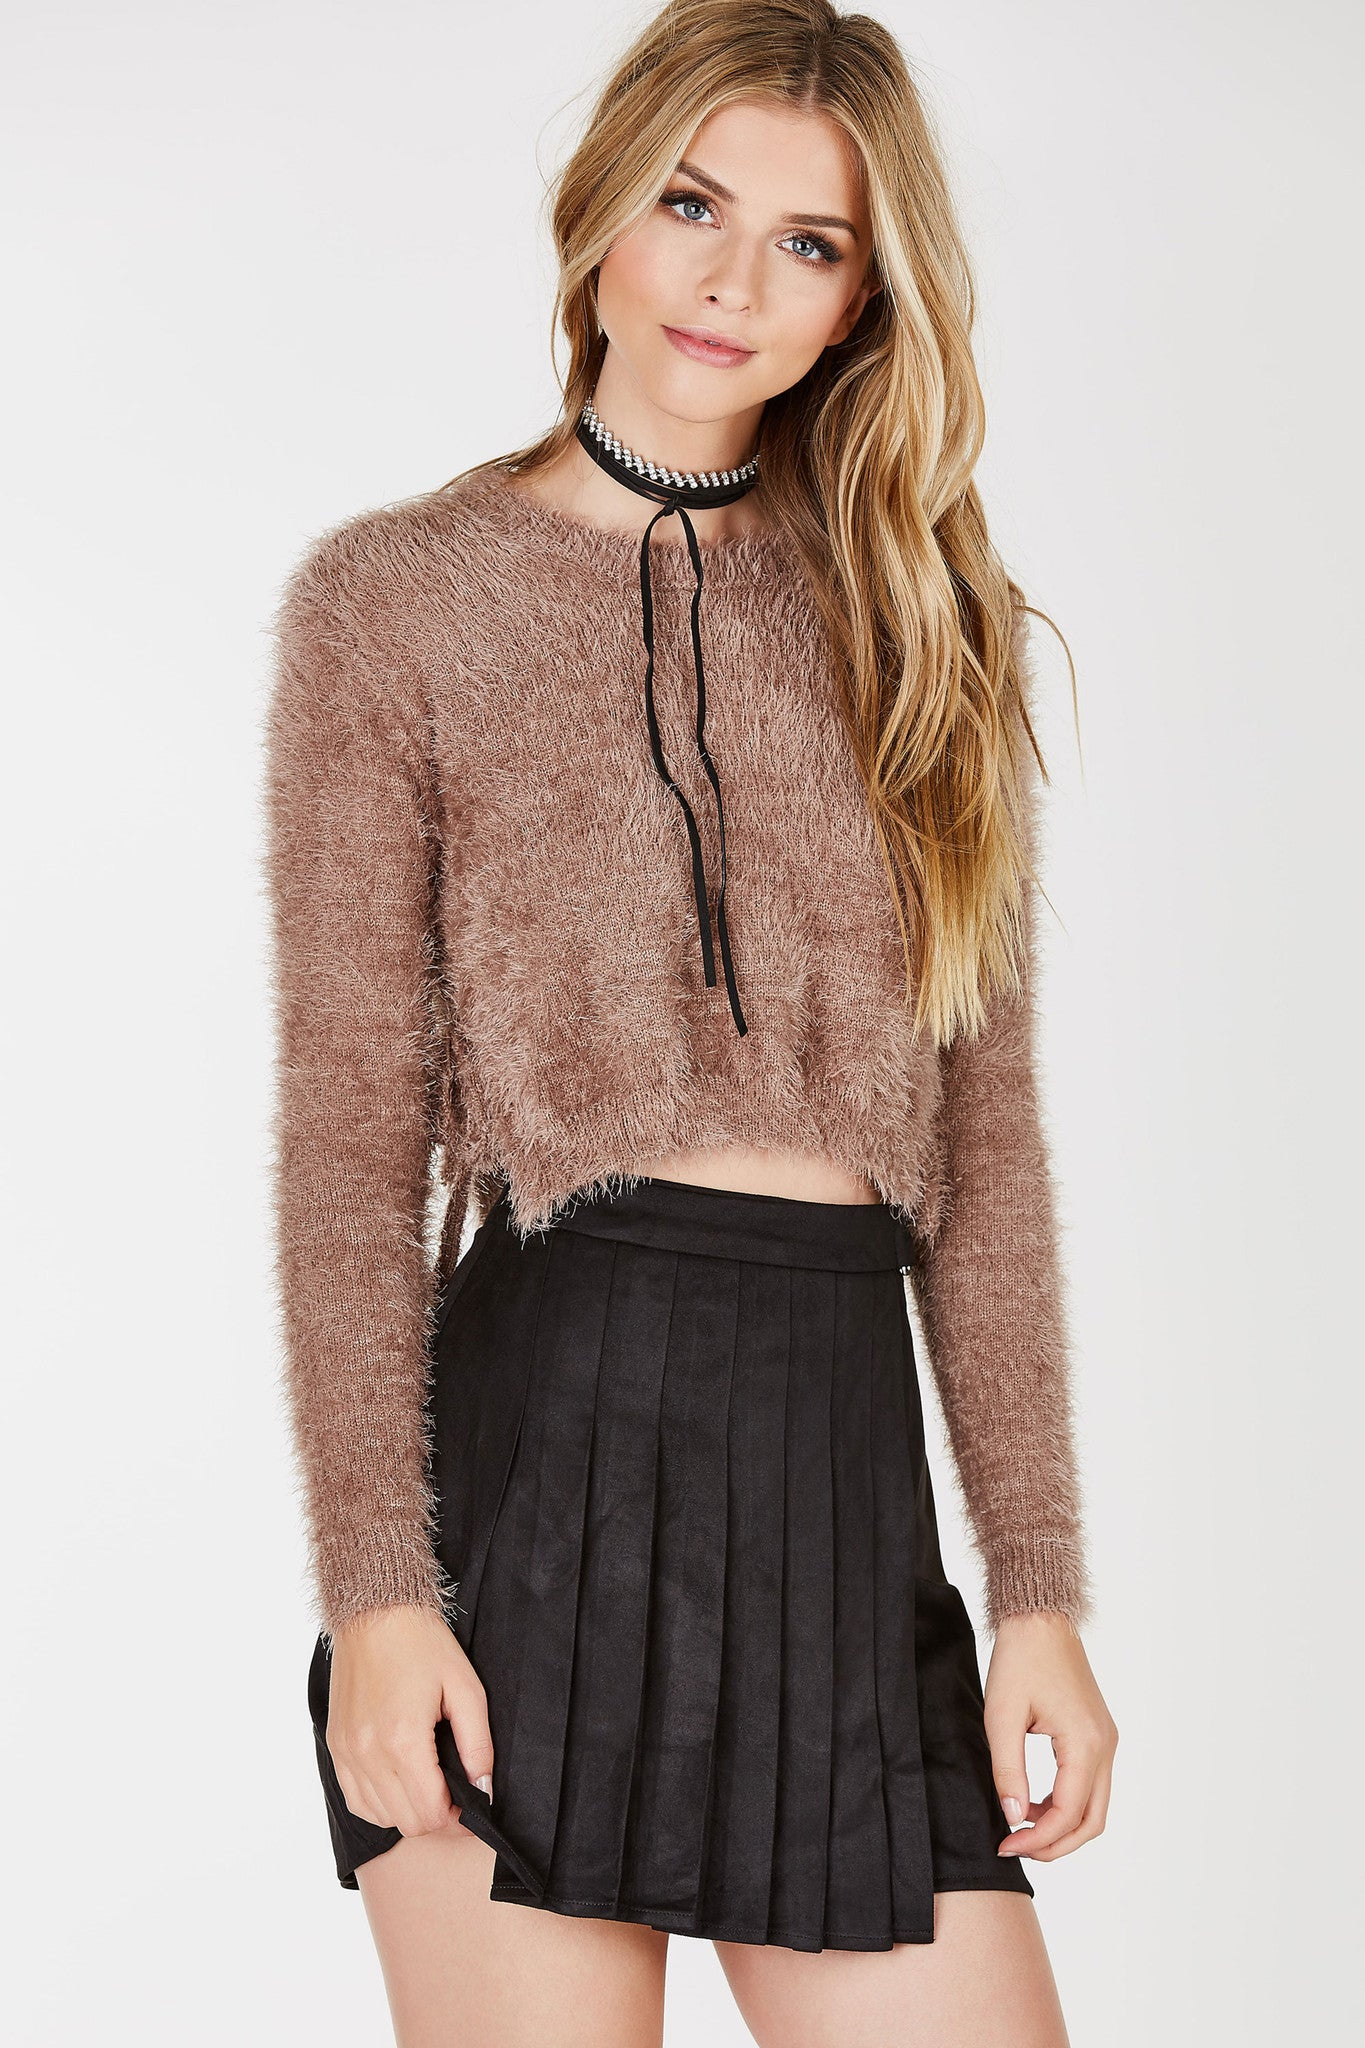 Fuzzy long-sleeved, cropped sweater with side ties that's perfect for fall weather.